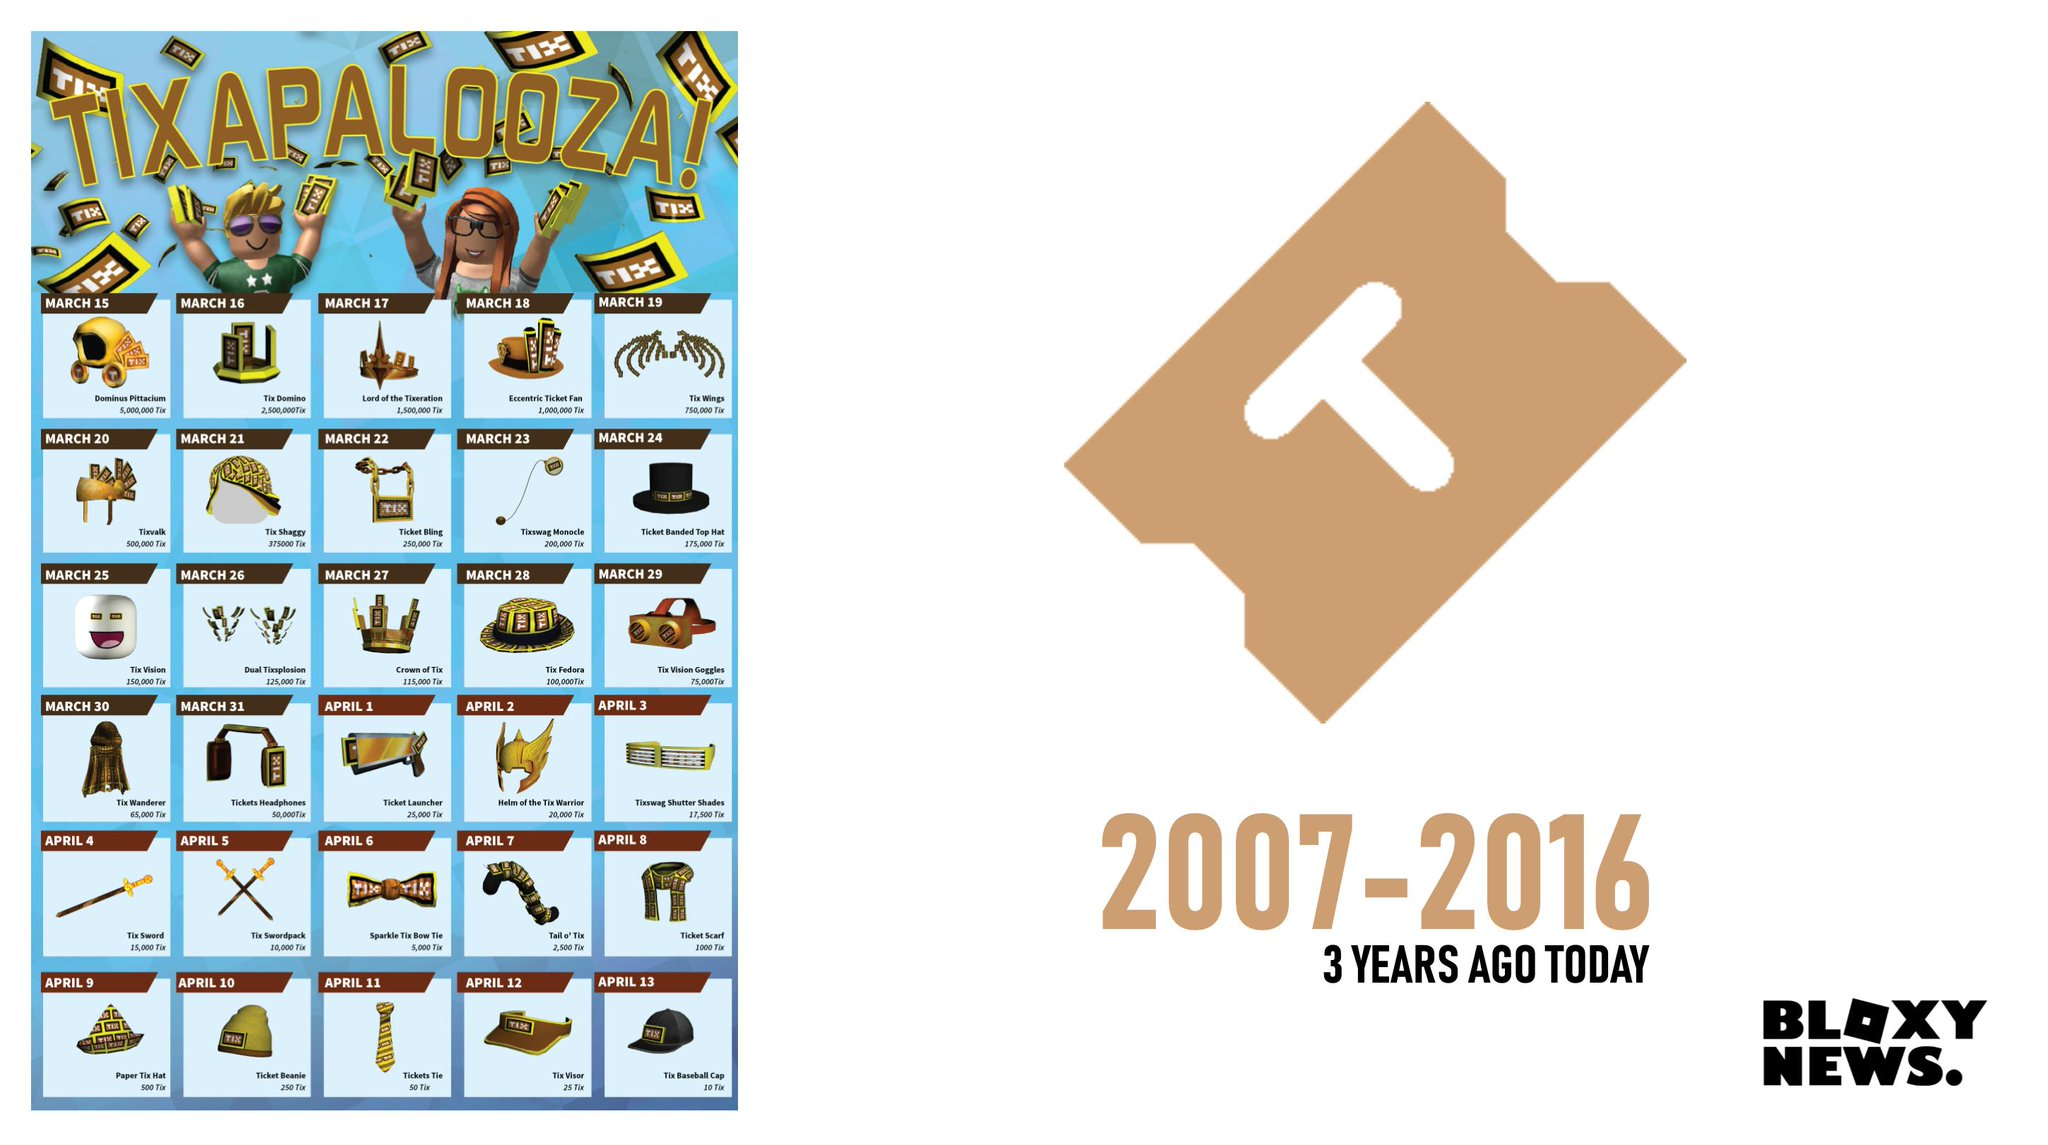 Roblox Blog Saying Goodbye To Tix Bloxy News On Twitter Bloxynews 3 Years Ago Today The Roblox Tix Currency Was Removed From The Site What Were Your Favorite Memories Of Tix Did You Buy Anything During